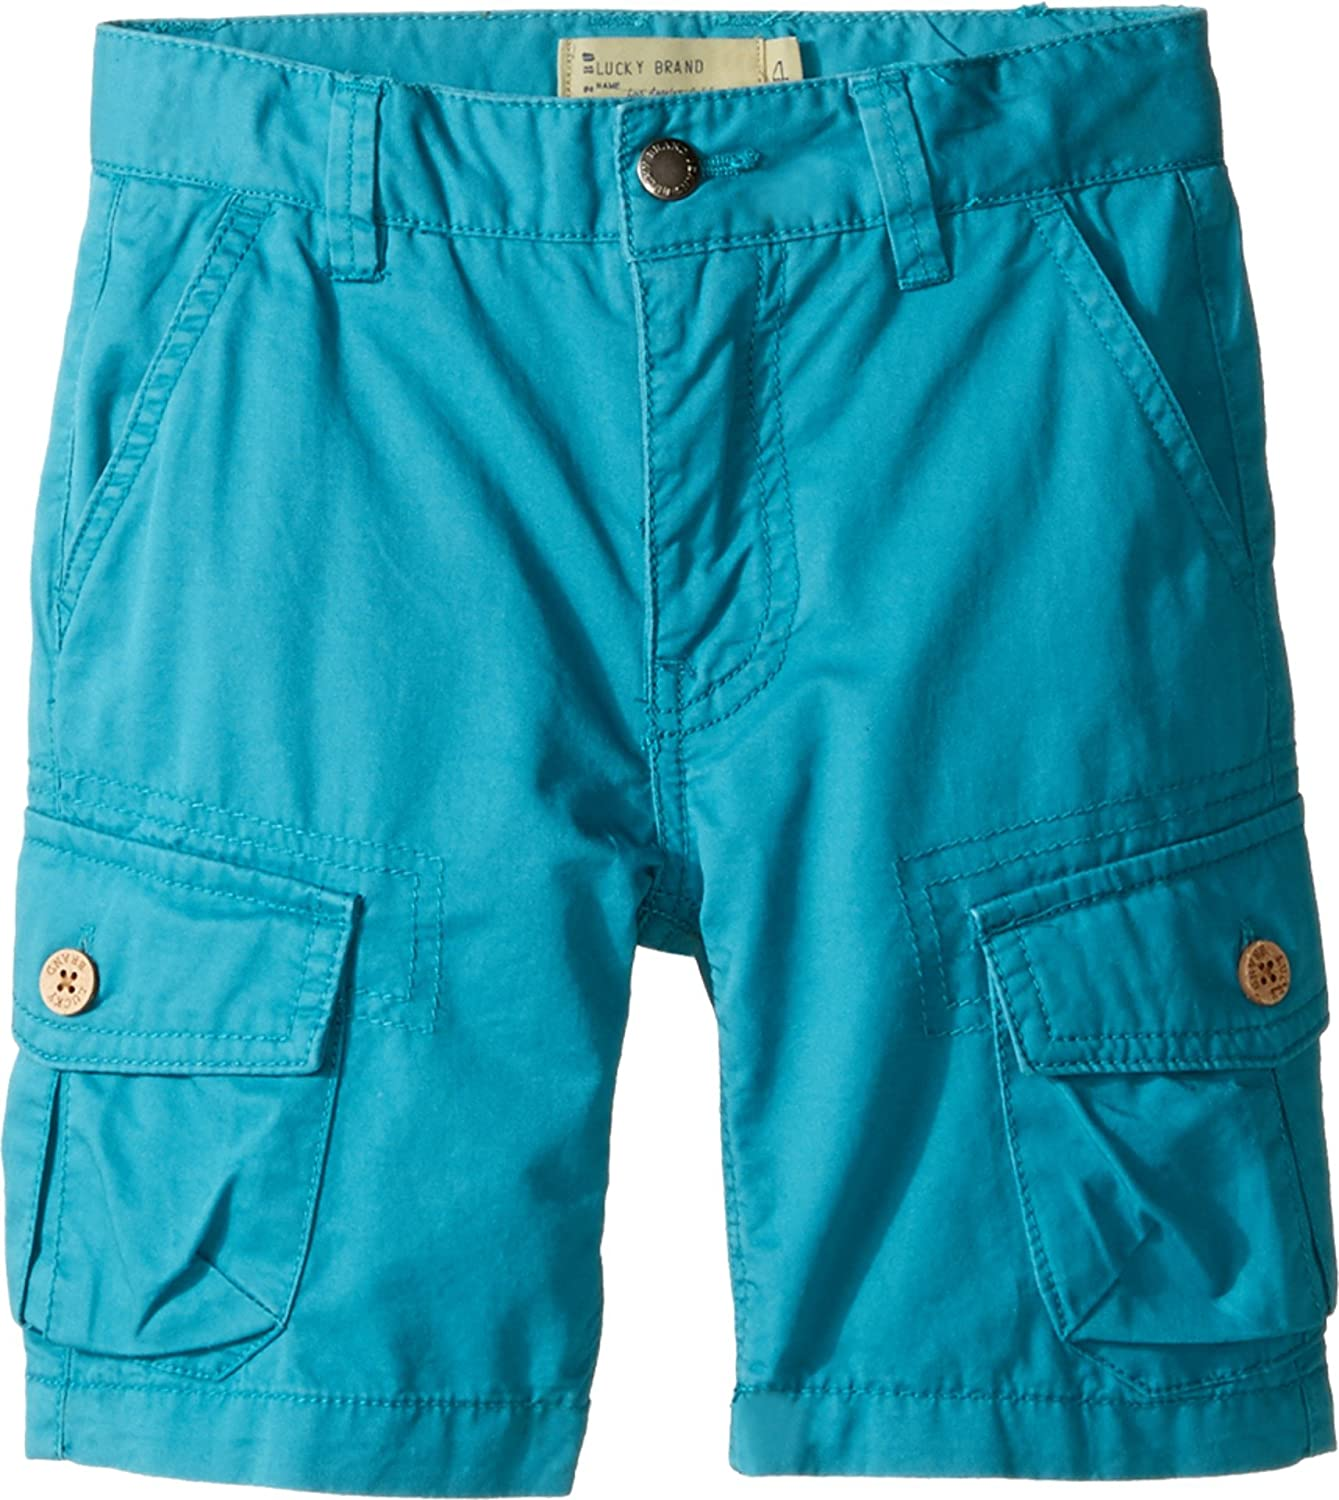 Lucky Brand Kids Boy 's Heritage Cargo Shorts In Twill ( Little Kids / Big Kids ) Parkaブルーショーツ